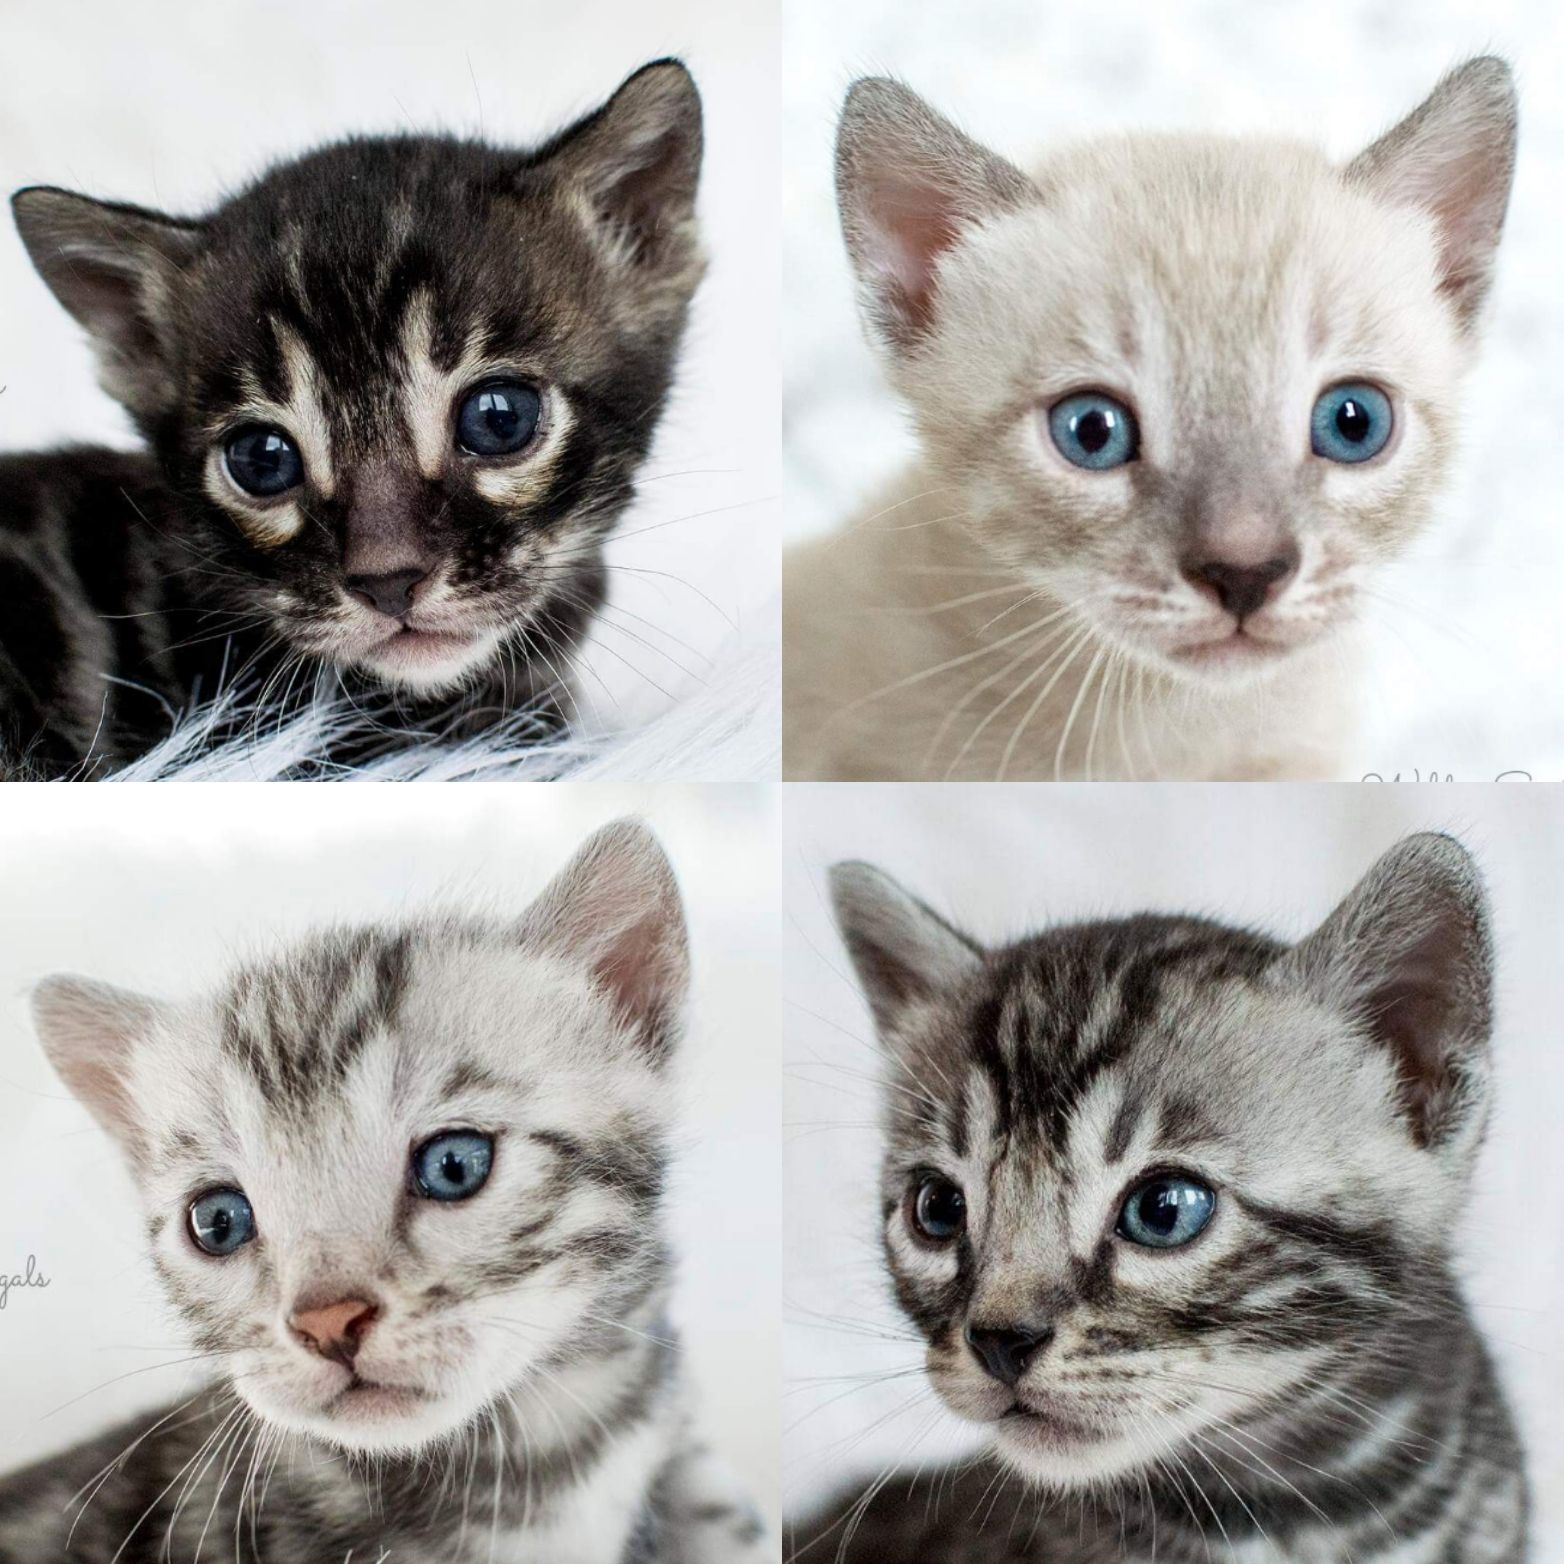 Bengal Kittens Cats For Sale Near Me Wild Sweet Bengals In 2020 Bengal Kitten Bengal Kittens For Sale Kittens